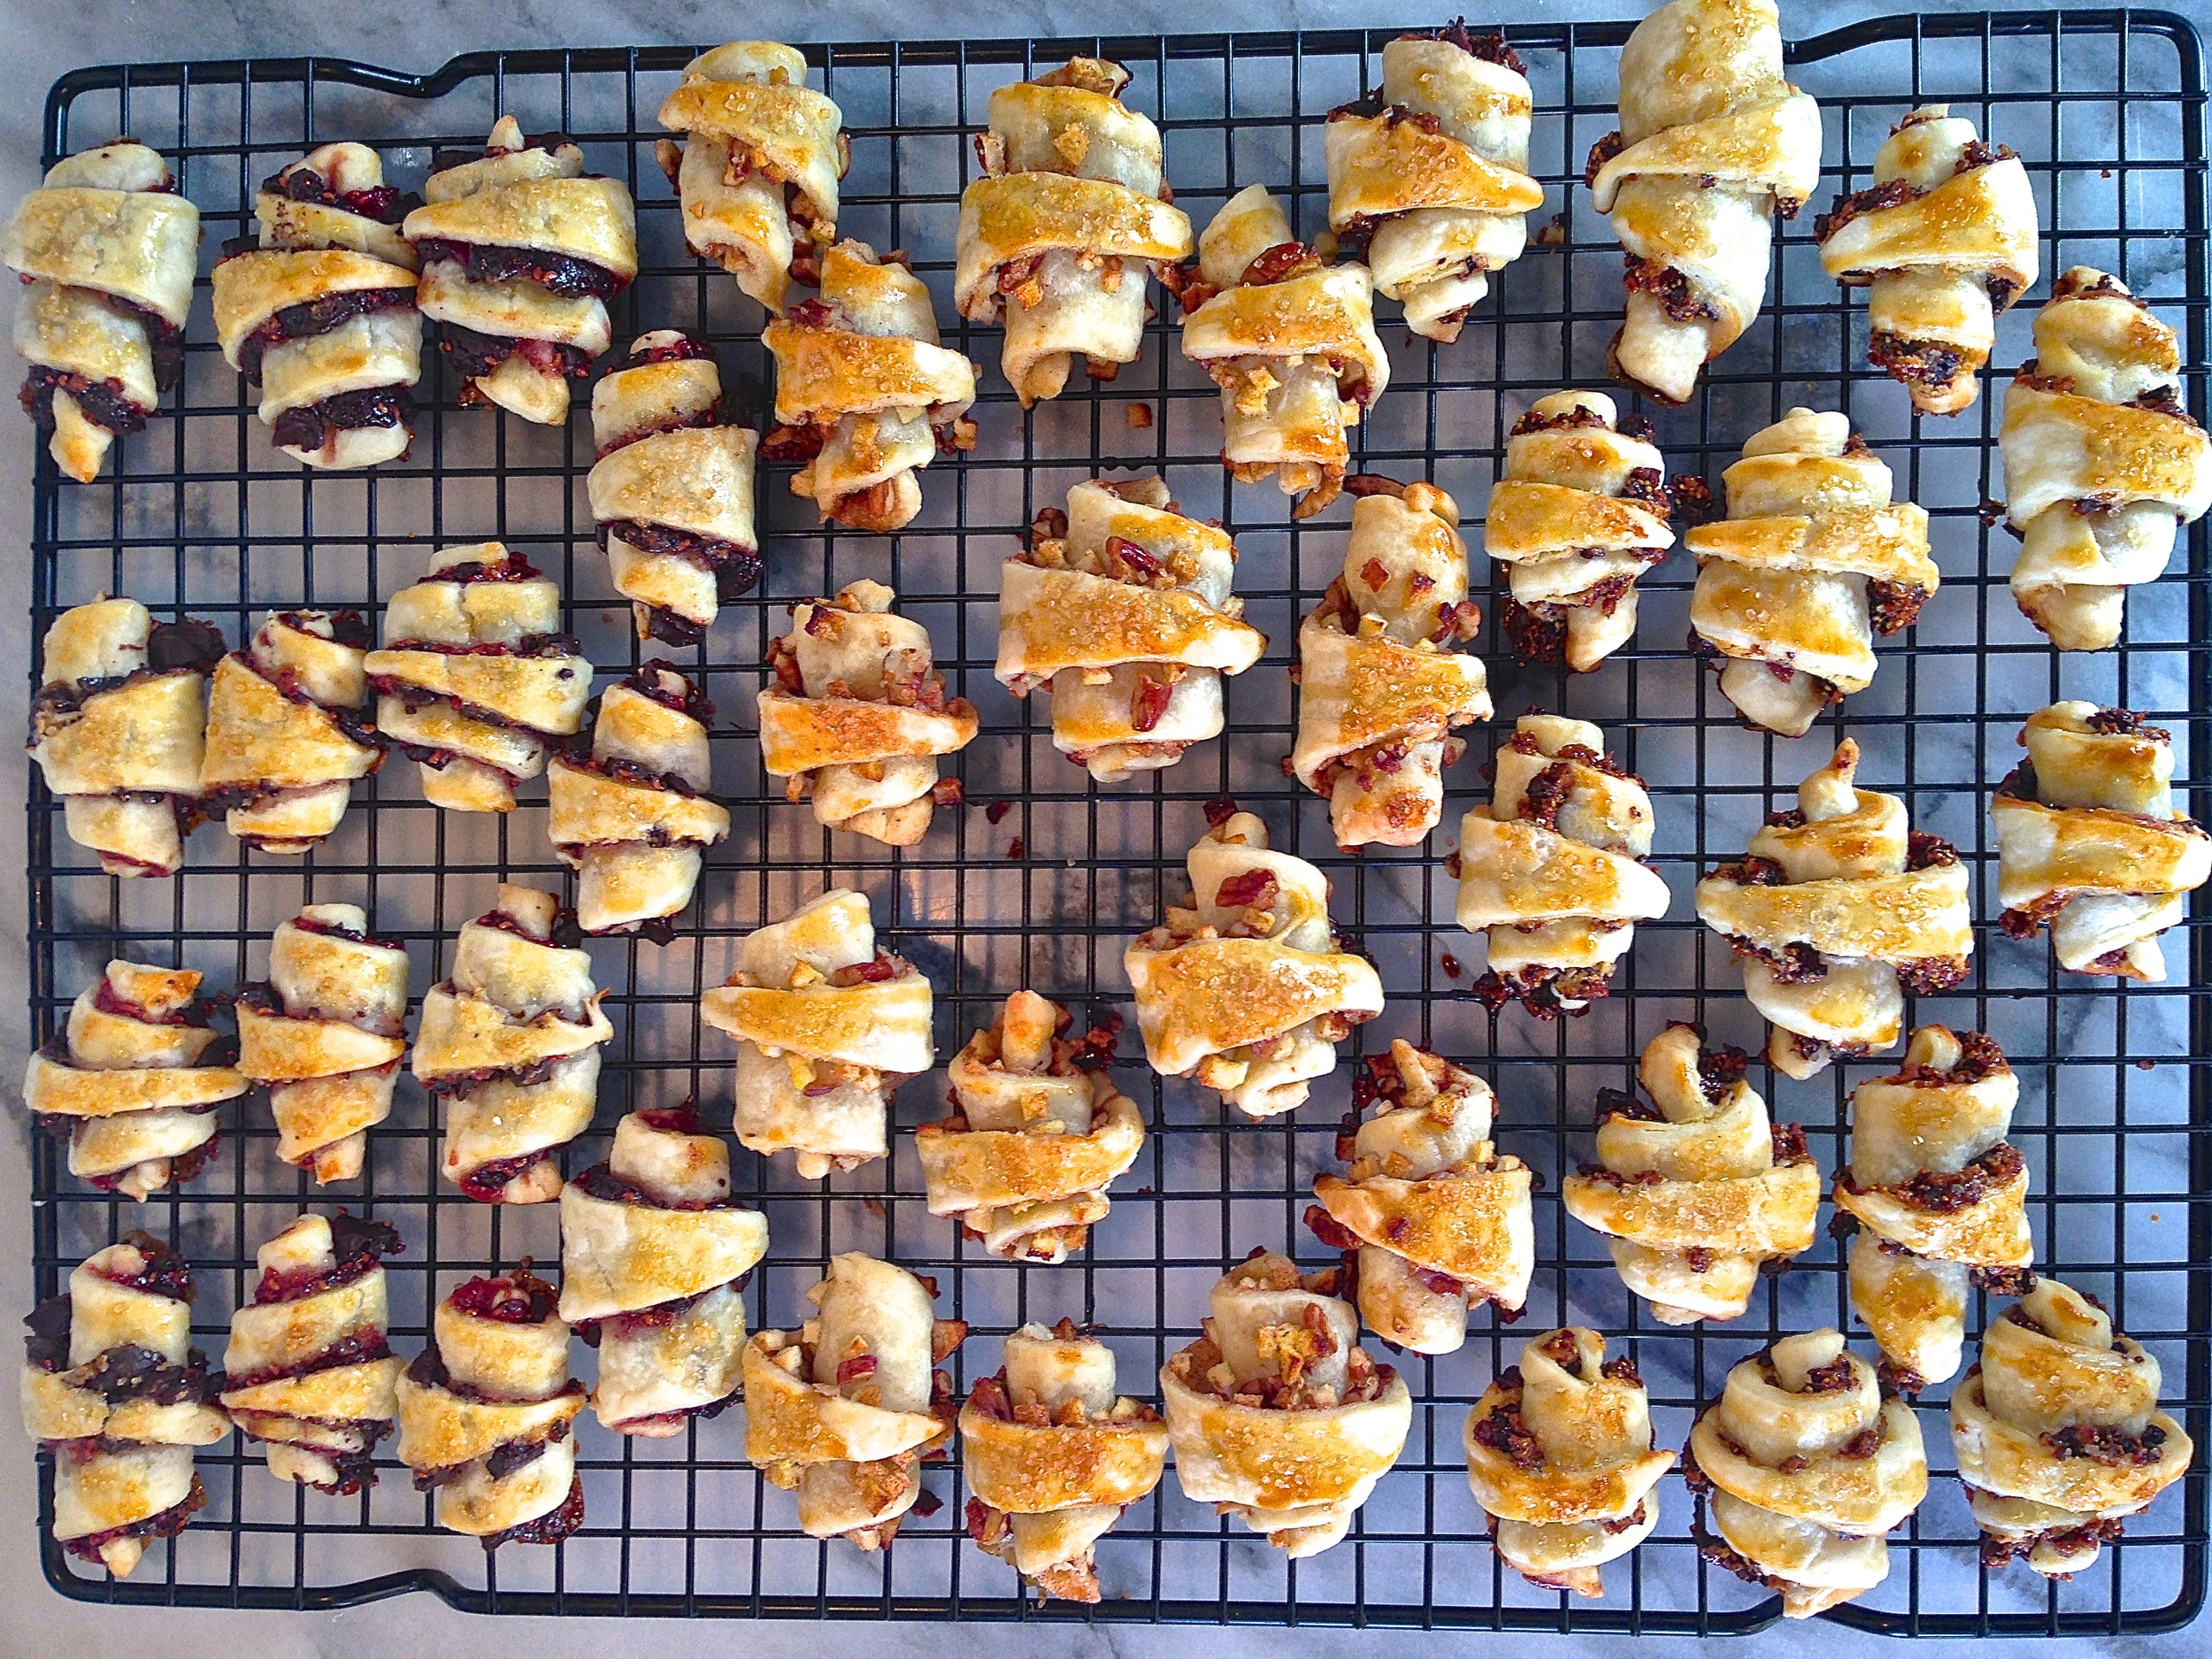 Homemade Rugelach 3 Ways: Chocolate Raspberry, Cinnamon Apple with Toasted Pecans, & Honeyed Fig with Goat Cheese | Kneading Home